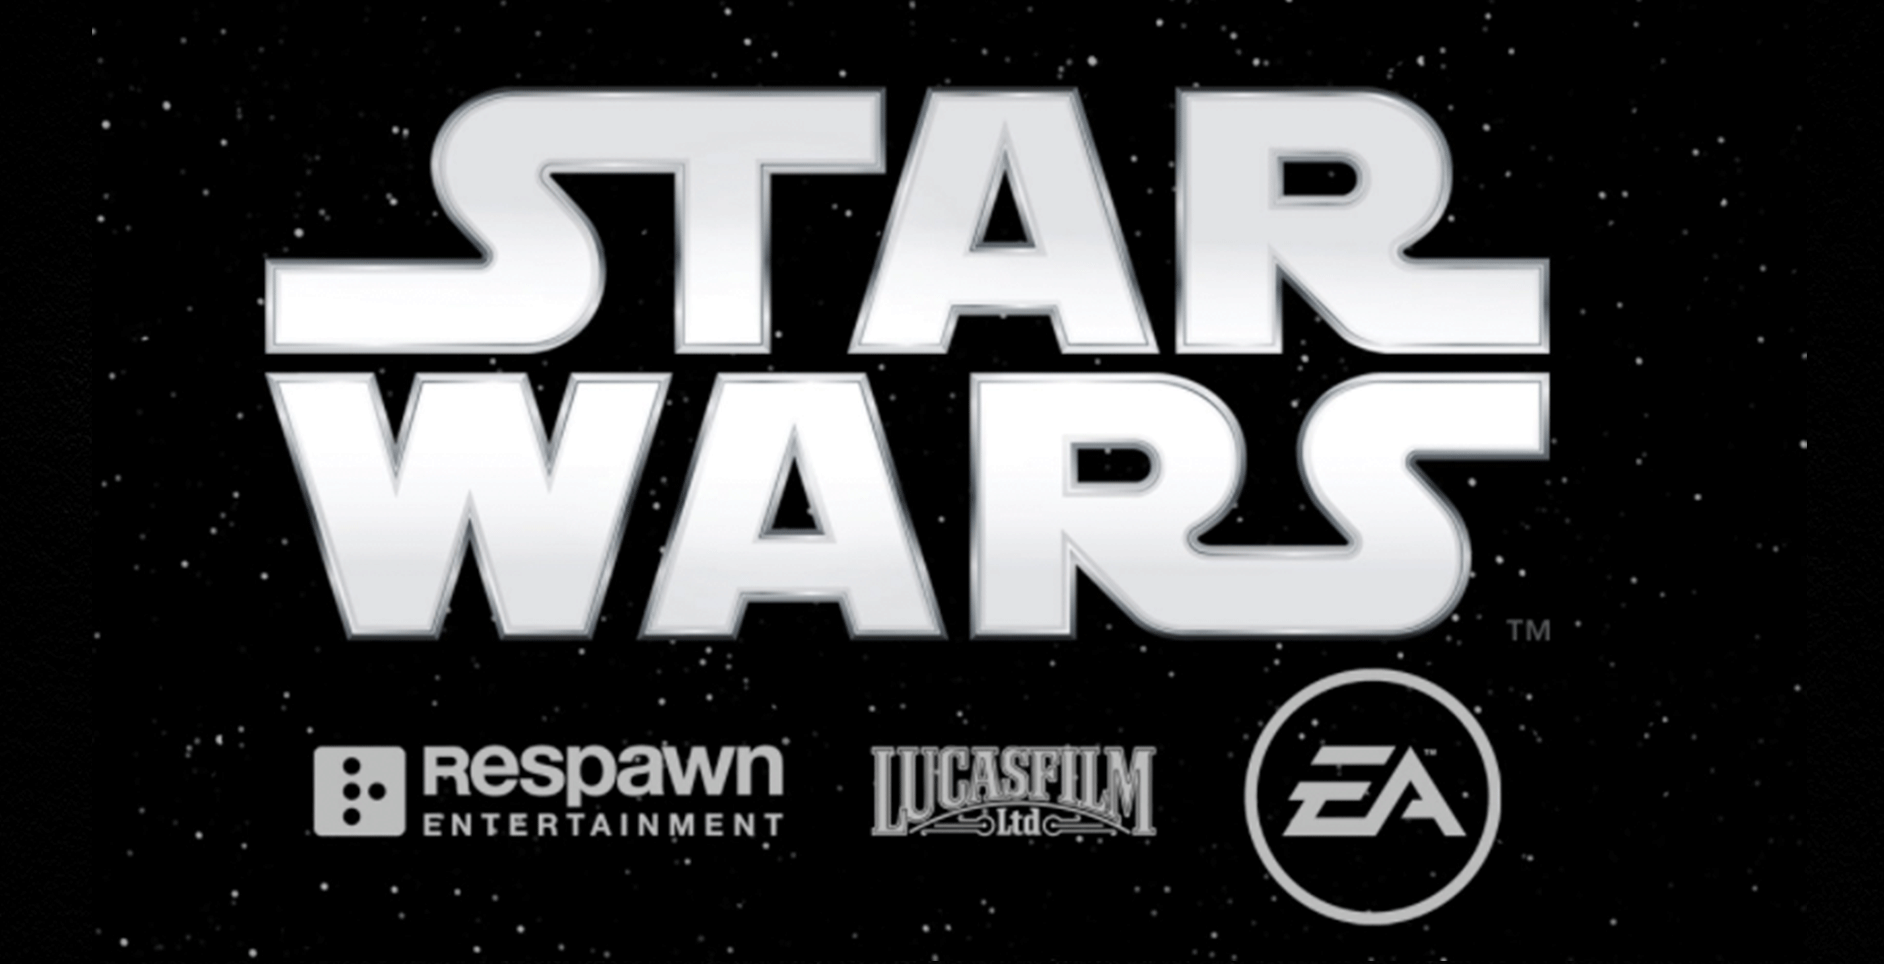 Respawn's Star Wars Game Expected In Fiscal 2020